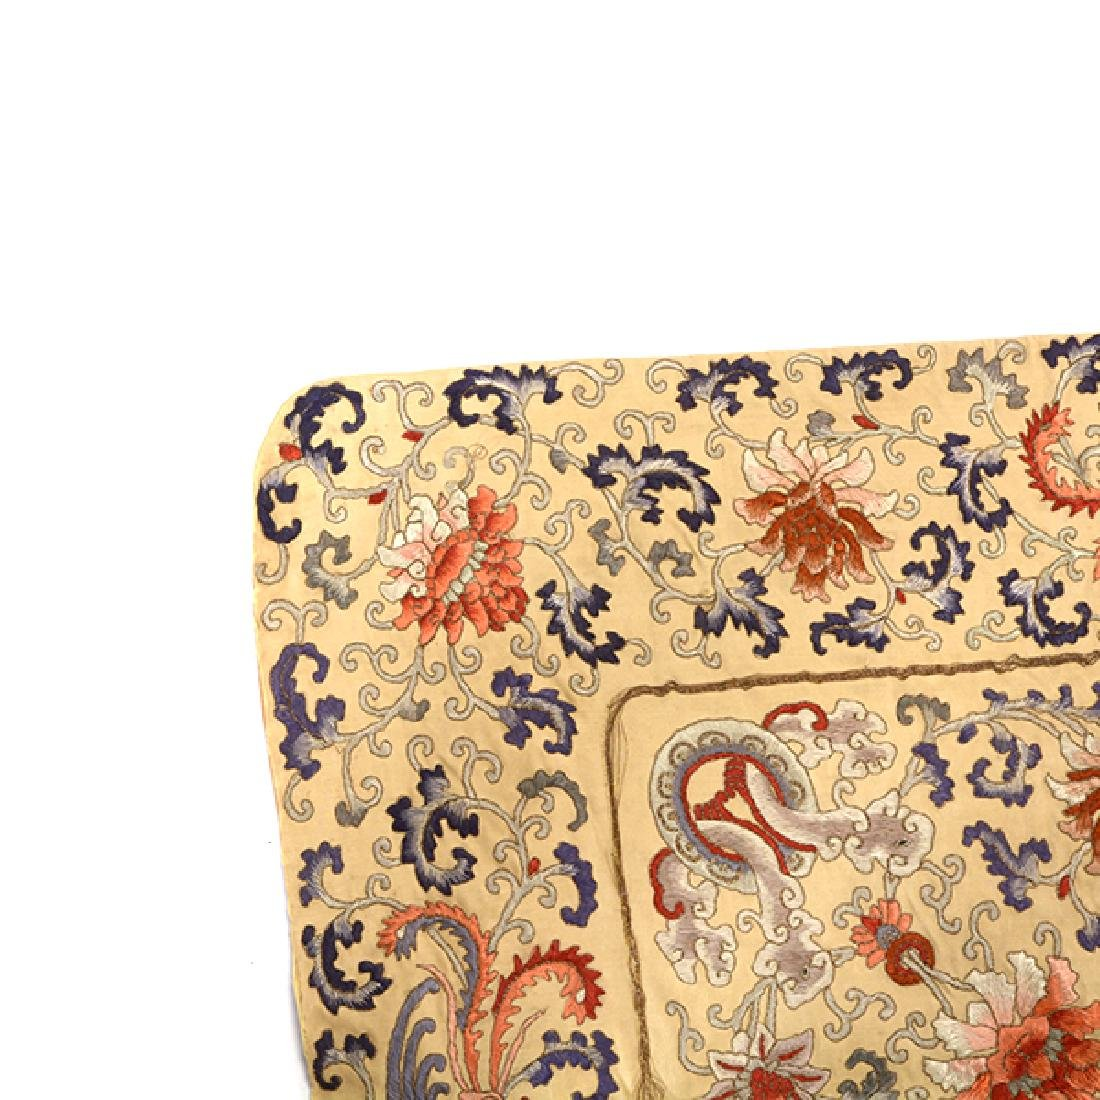 An Embroidered Square Panel, 19th Century - 3